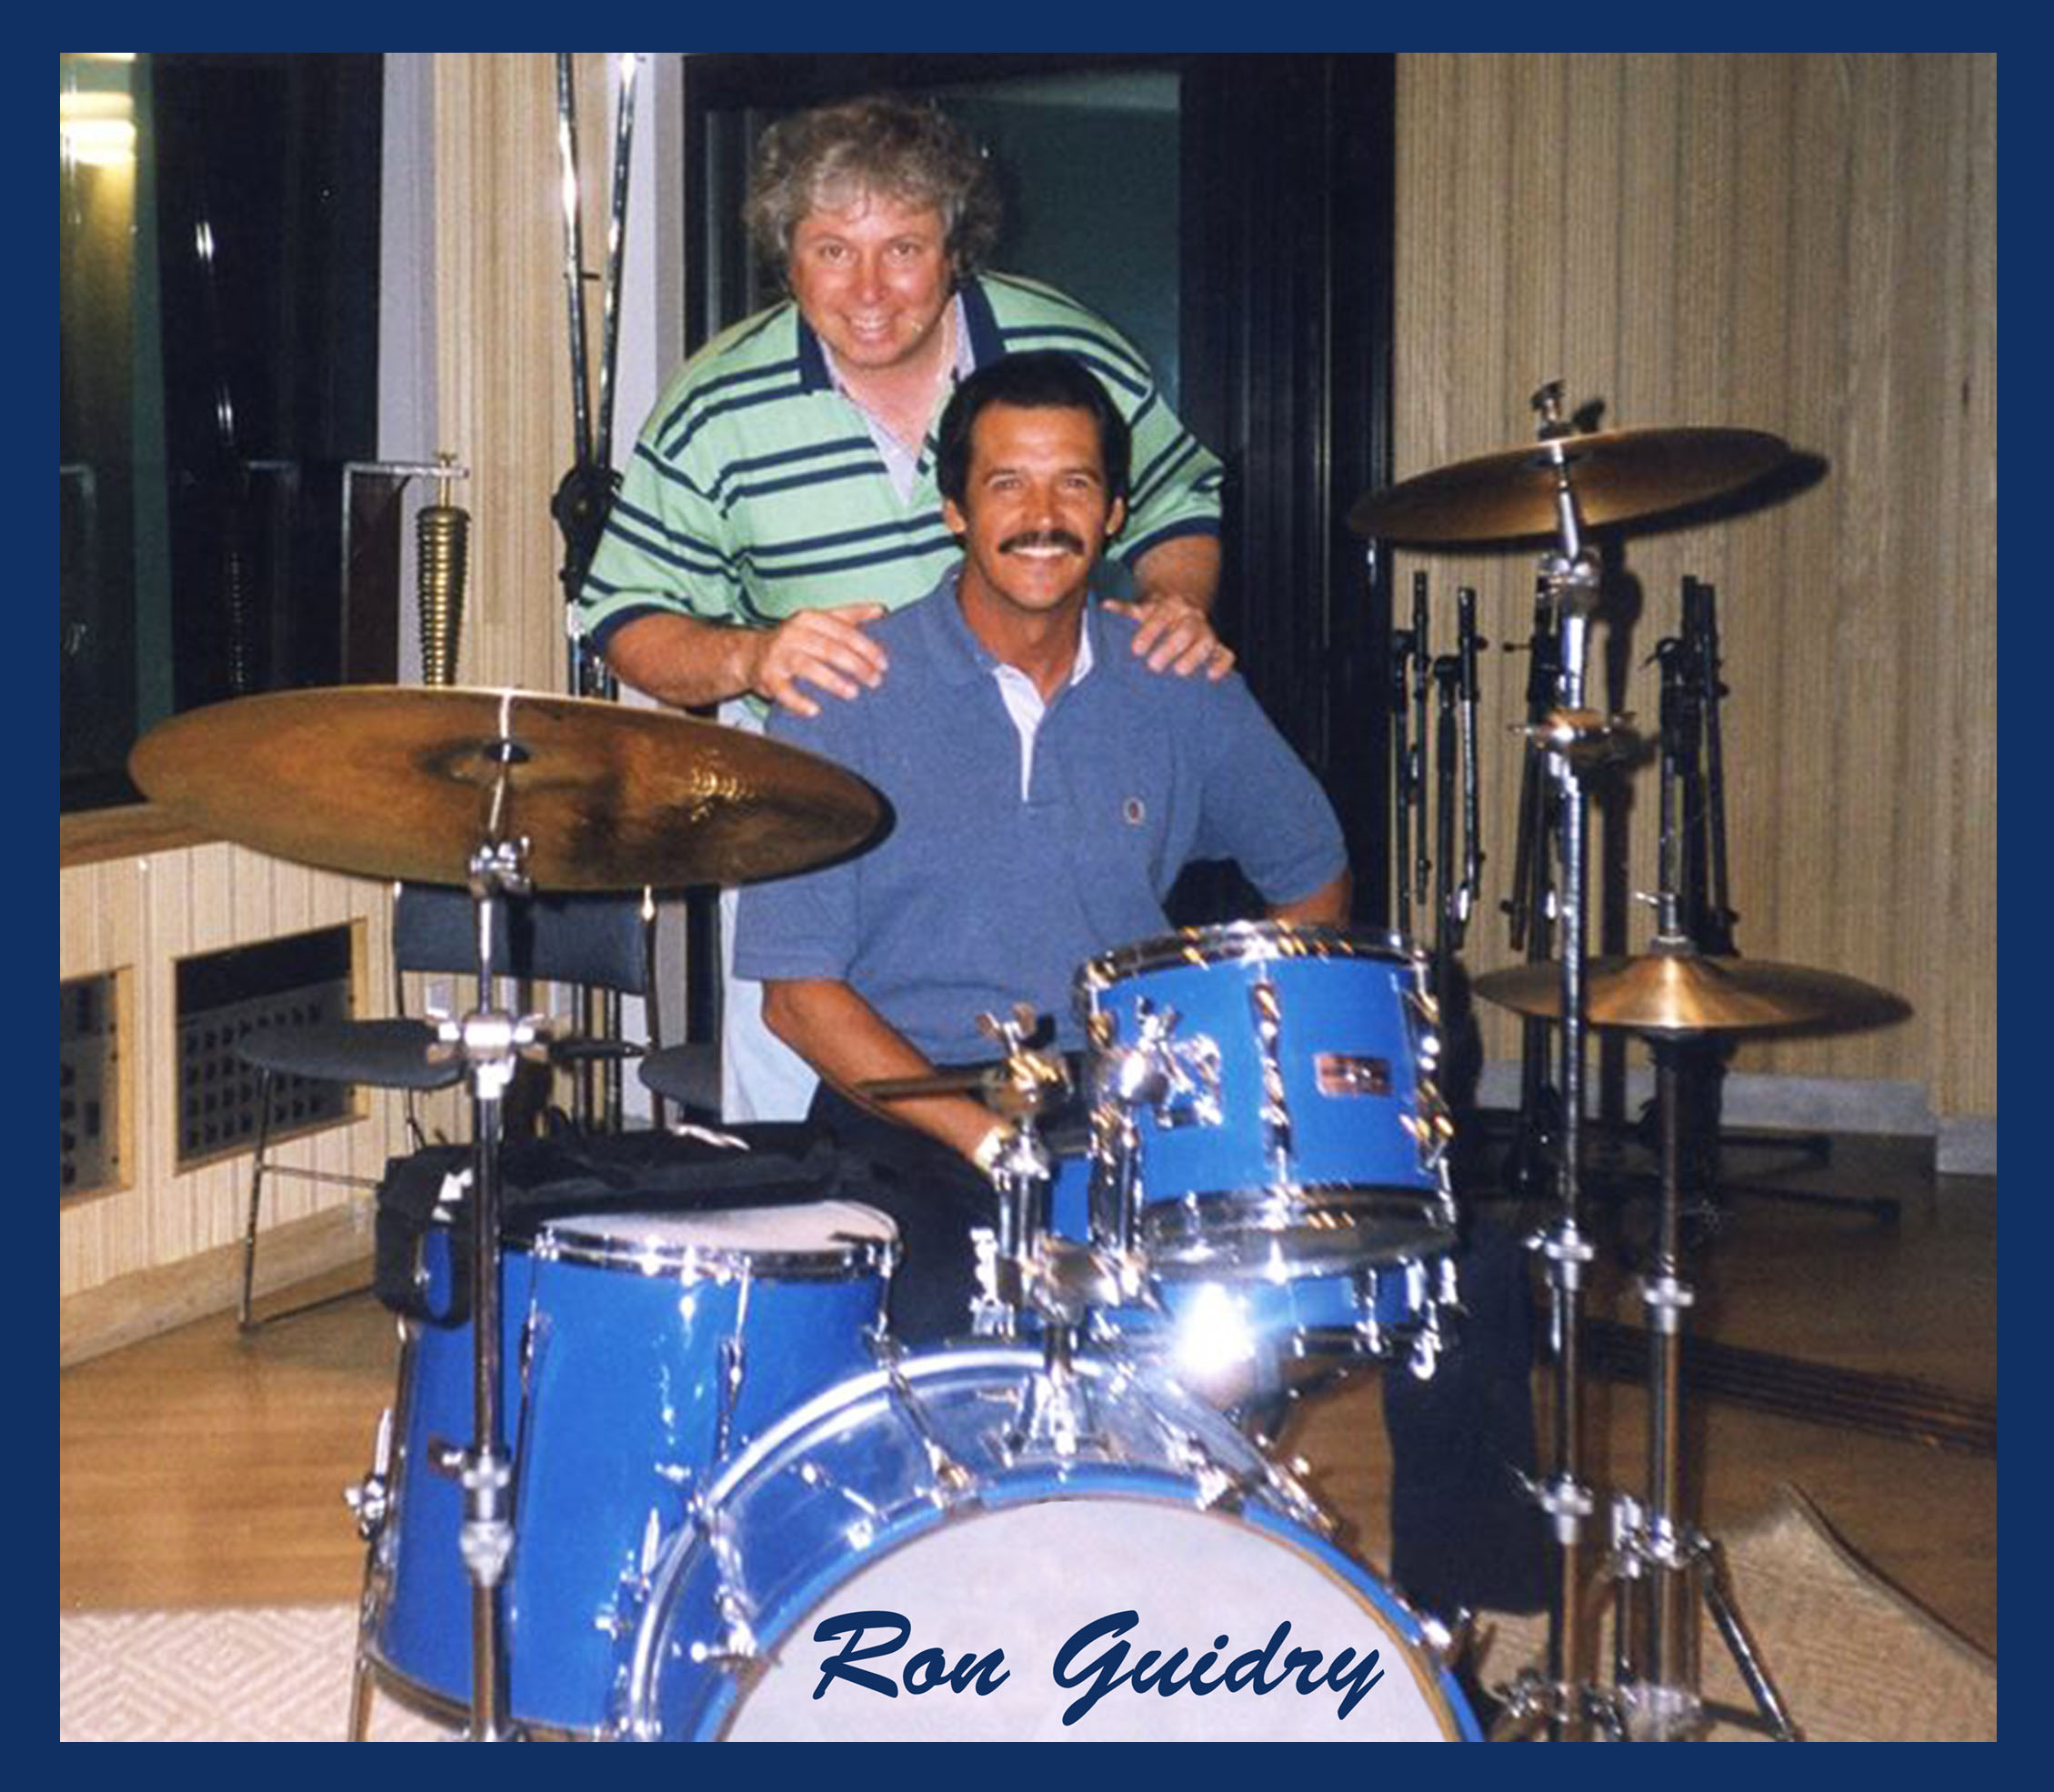 Ron-Guidry-Drums.jpg